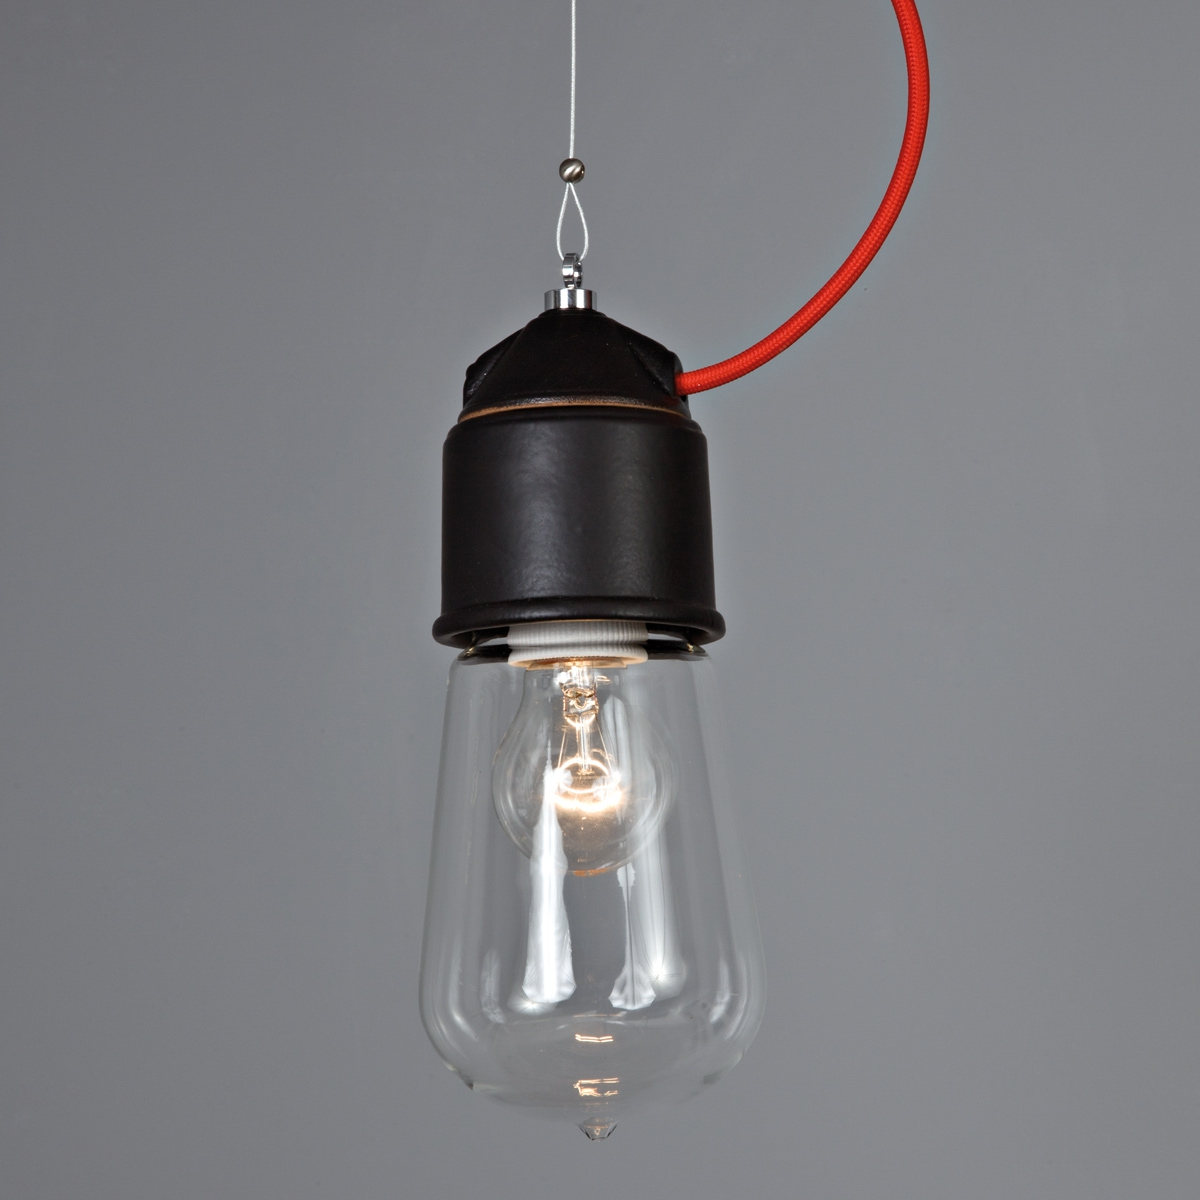 Suspension ampoule multiple solitario de style industriel for Lampe suspension ampoule